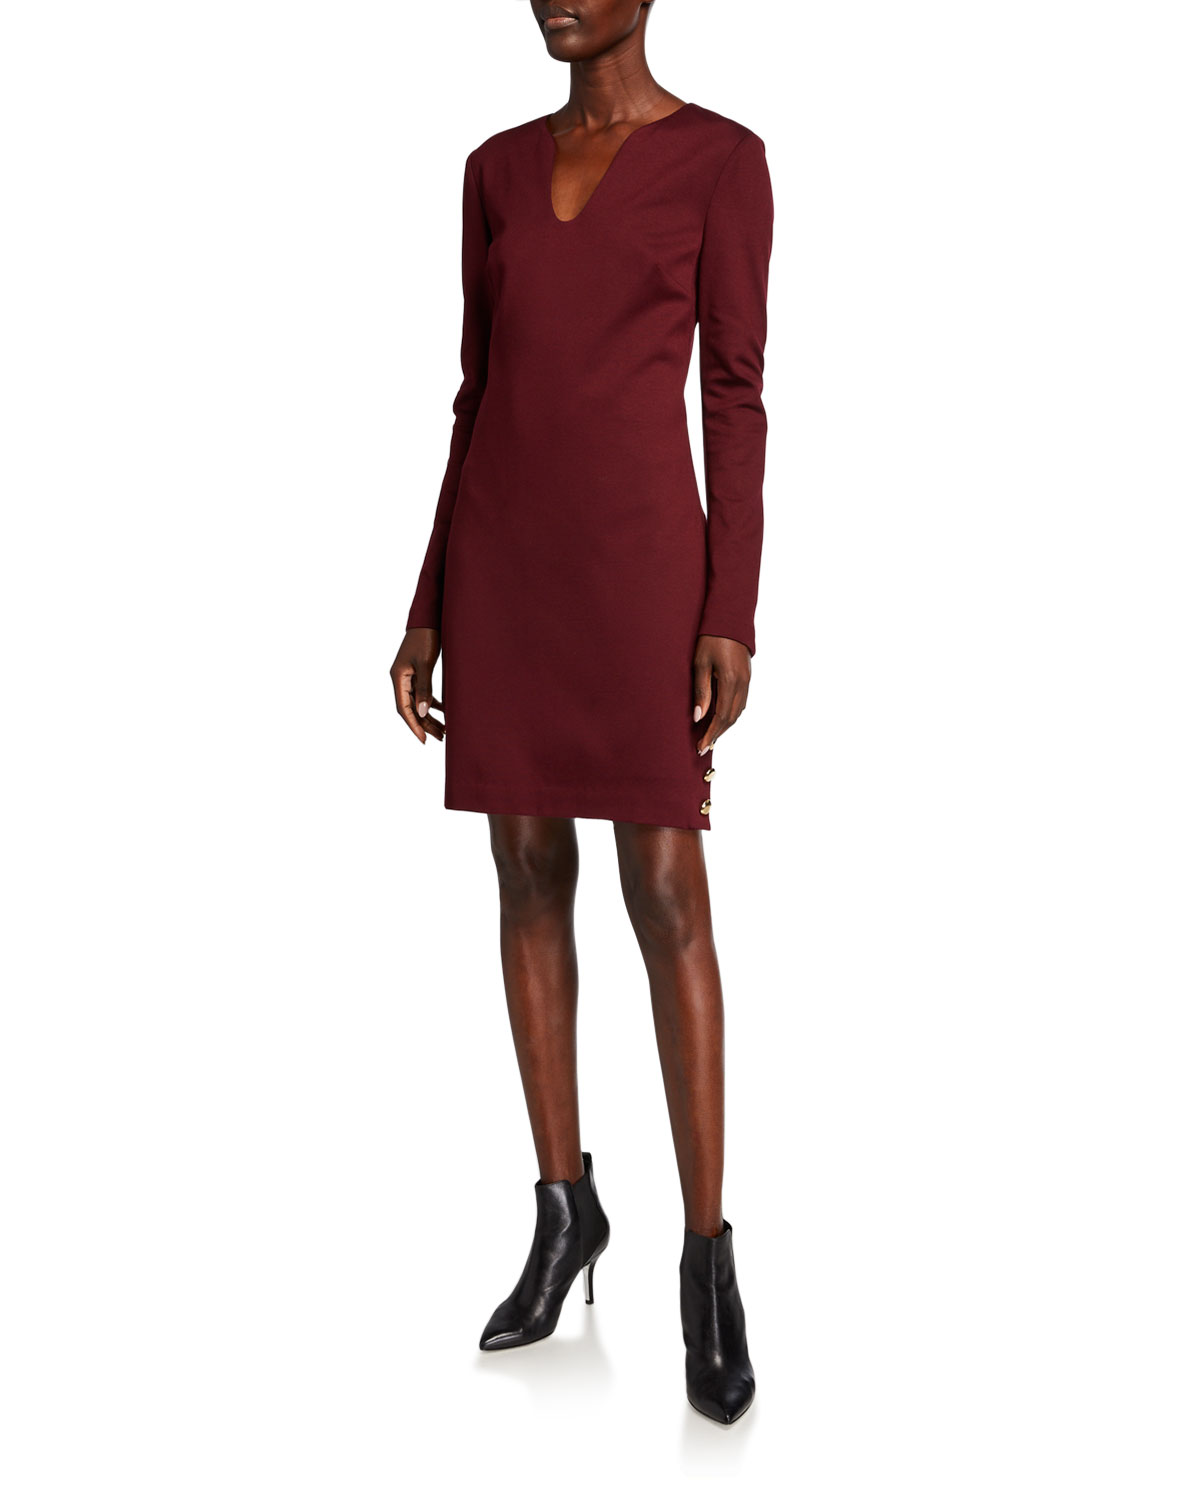 Trina Turk Shiraz V-Neck Long-Sleeve Ponte Dress w/ Button Accents